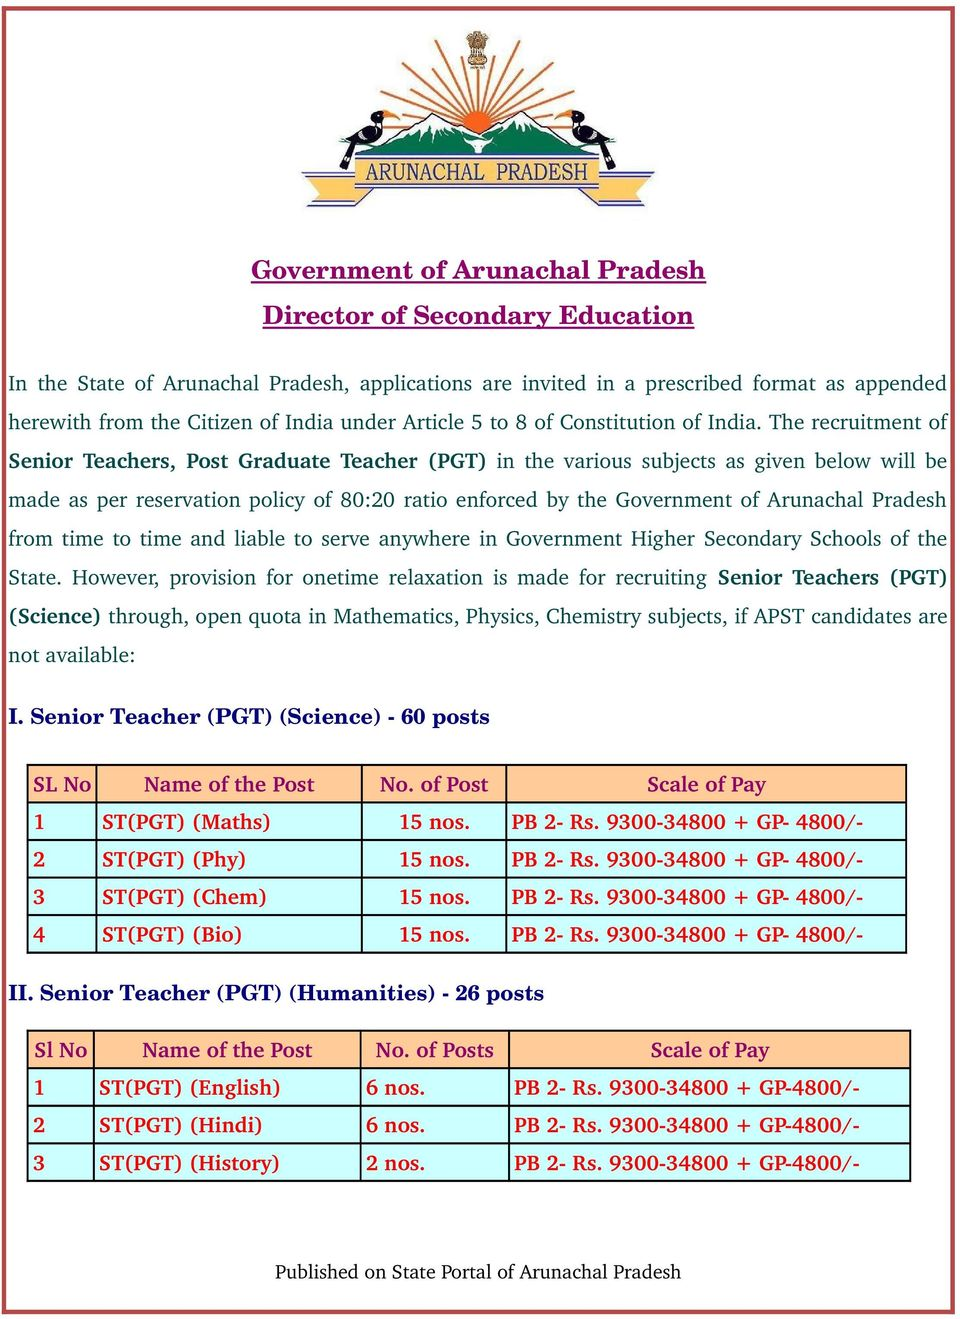 The recruitment of Senior Teachers, Post Graduate Teacher (PGT) in the various subjects as given below will be made as per reservation policy of 80:20 ratio enforced by the Government of Arunachal